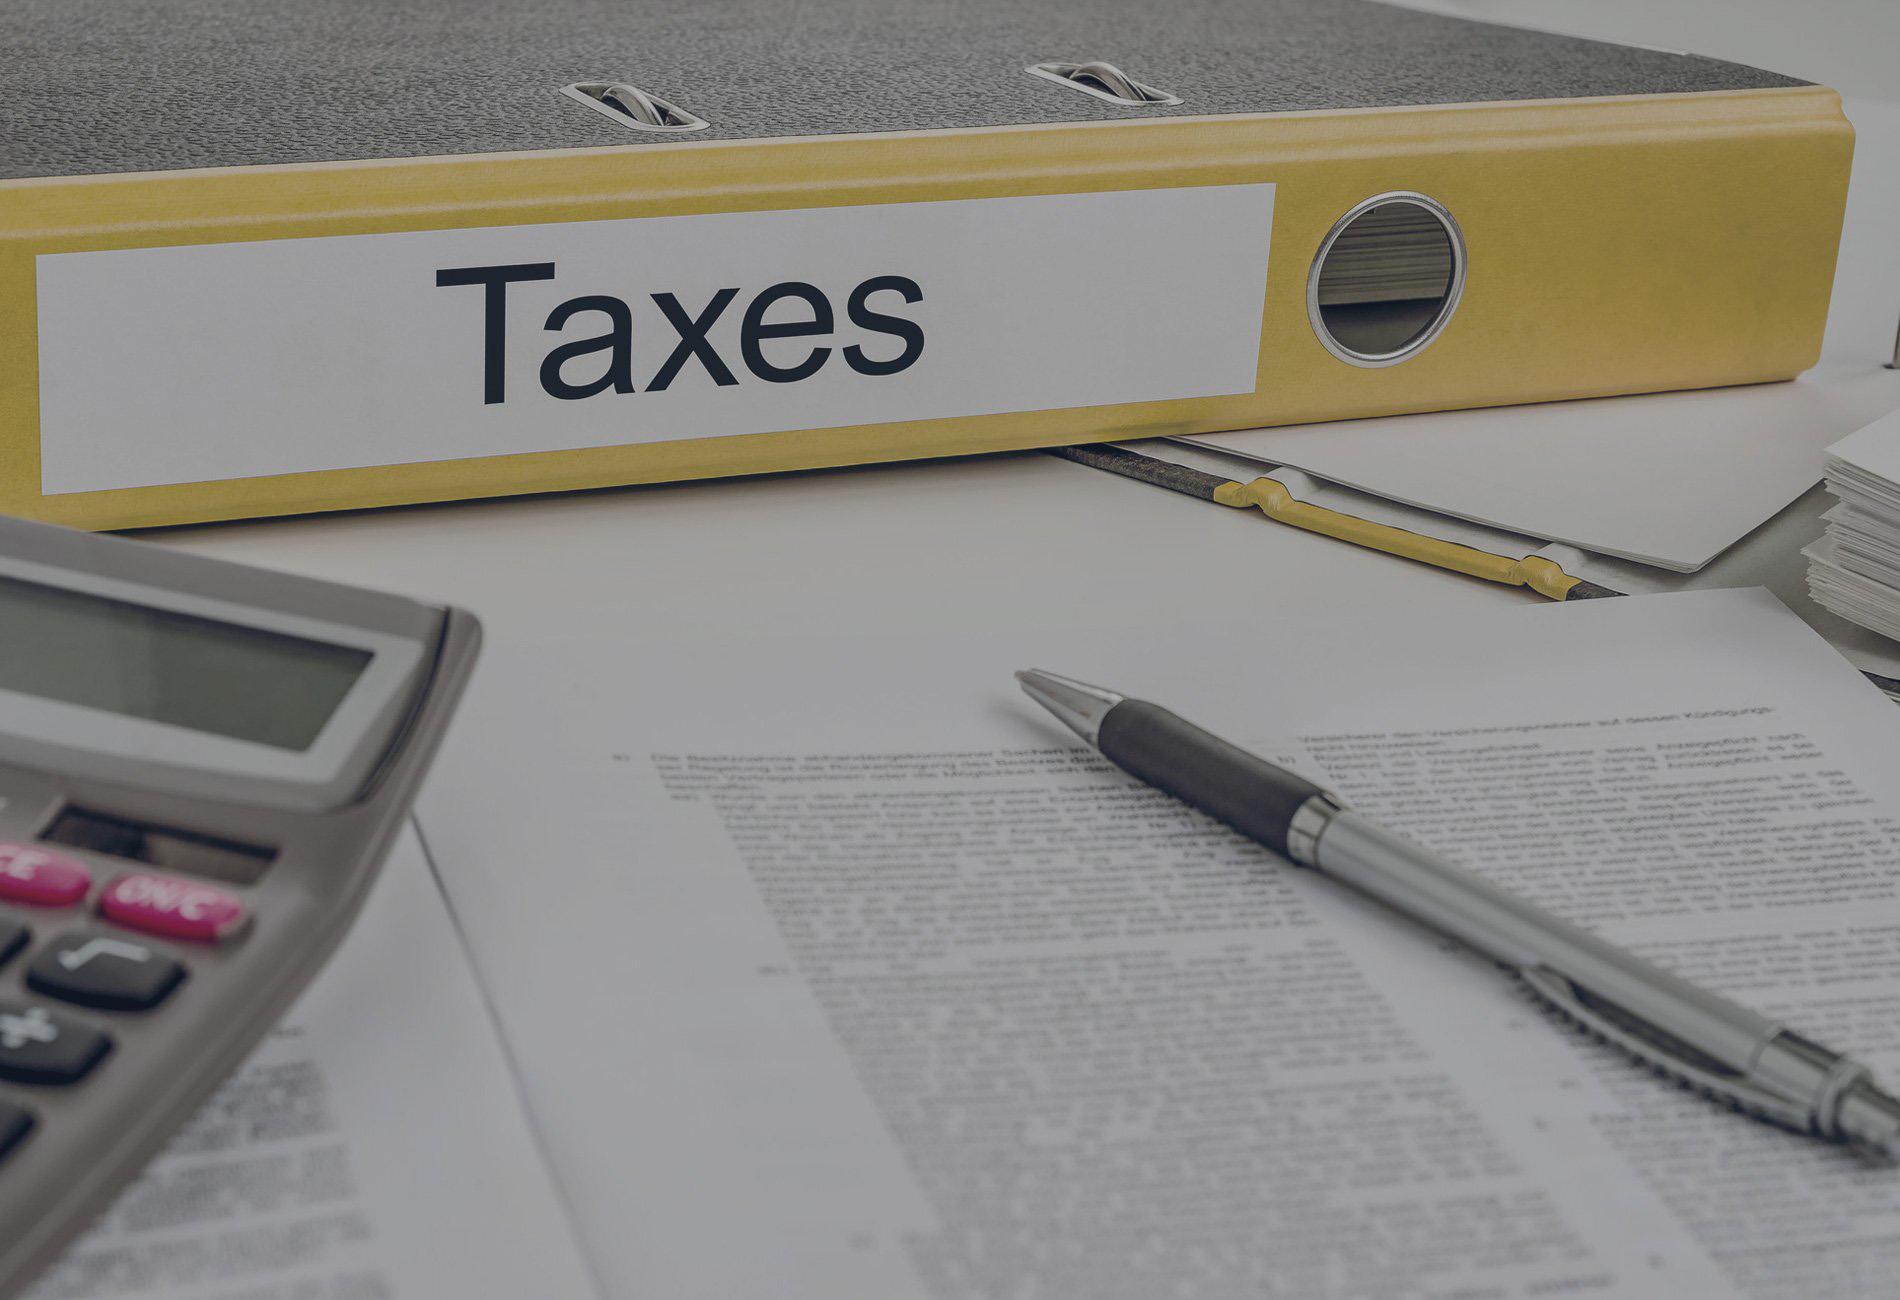 File of taxes on table with calculator and pen